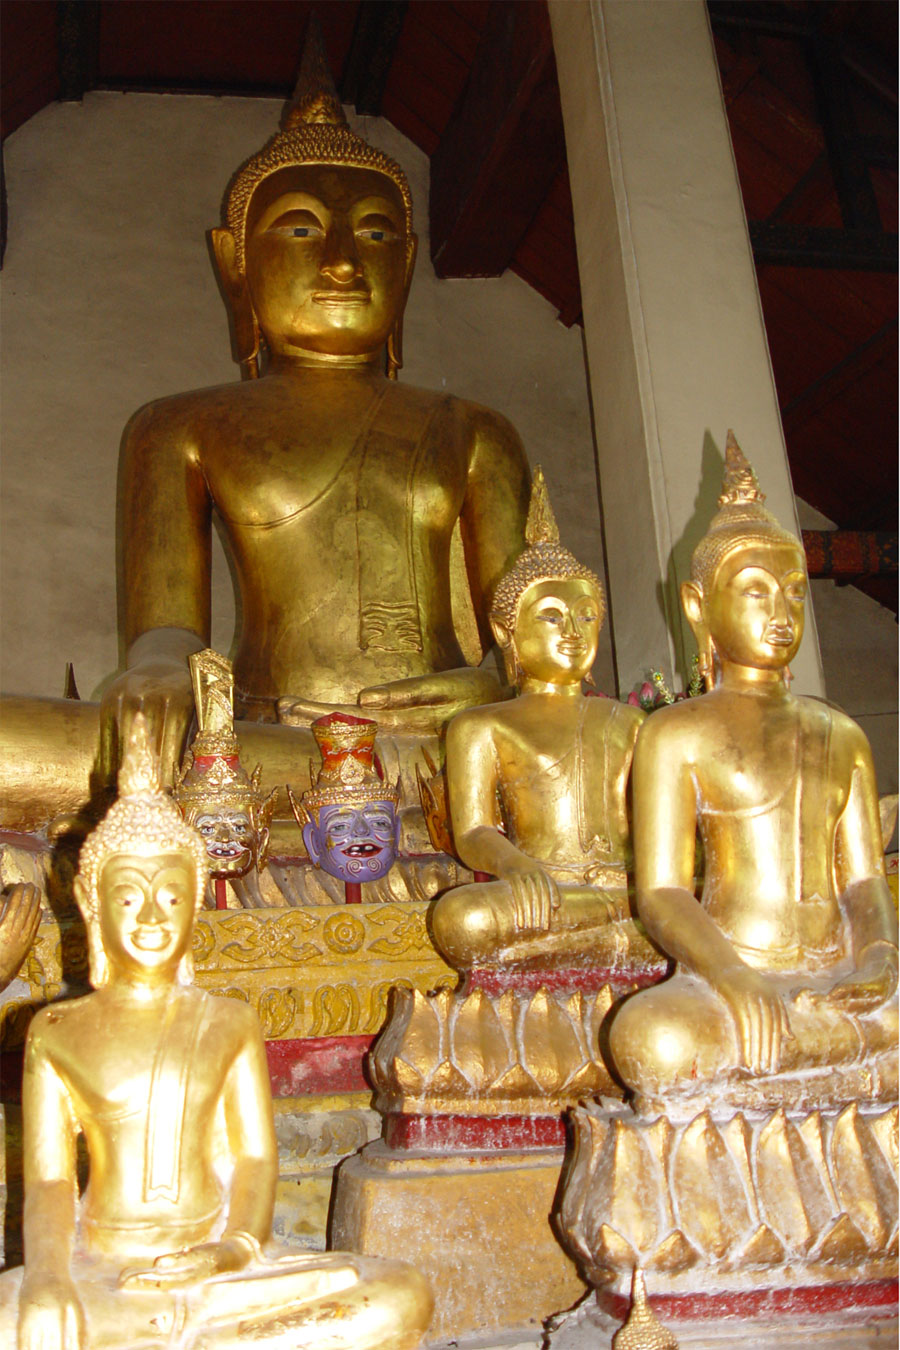 Picture of sitting Buddhas